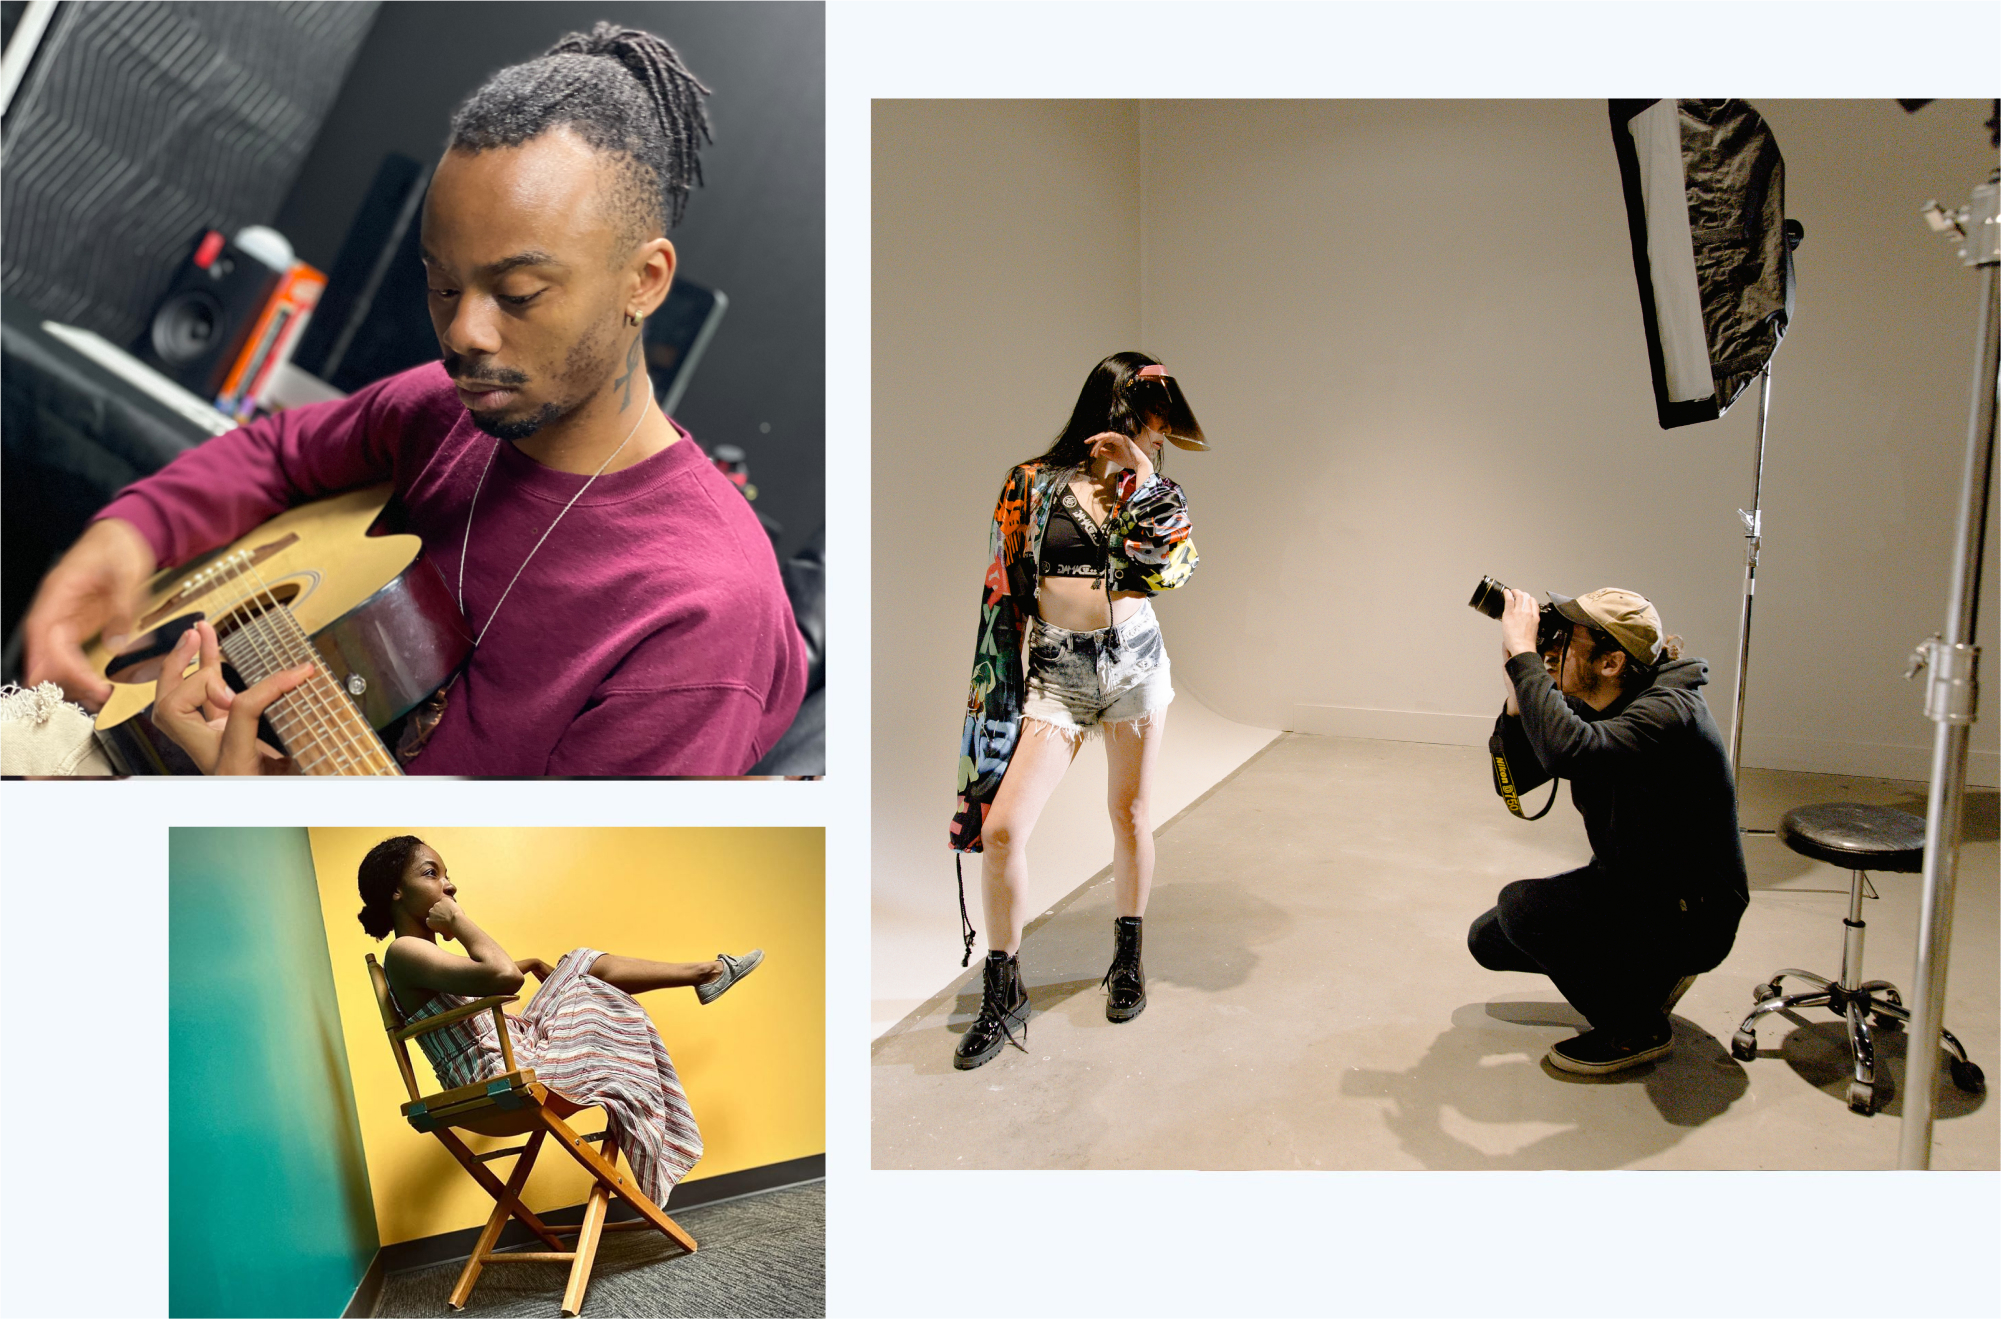 EXP Studio Image of man playing guitar, woman singer in director chair thinking and man photographer taking a picture of female model